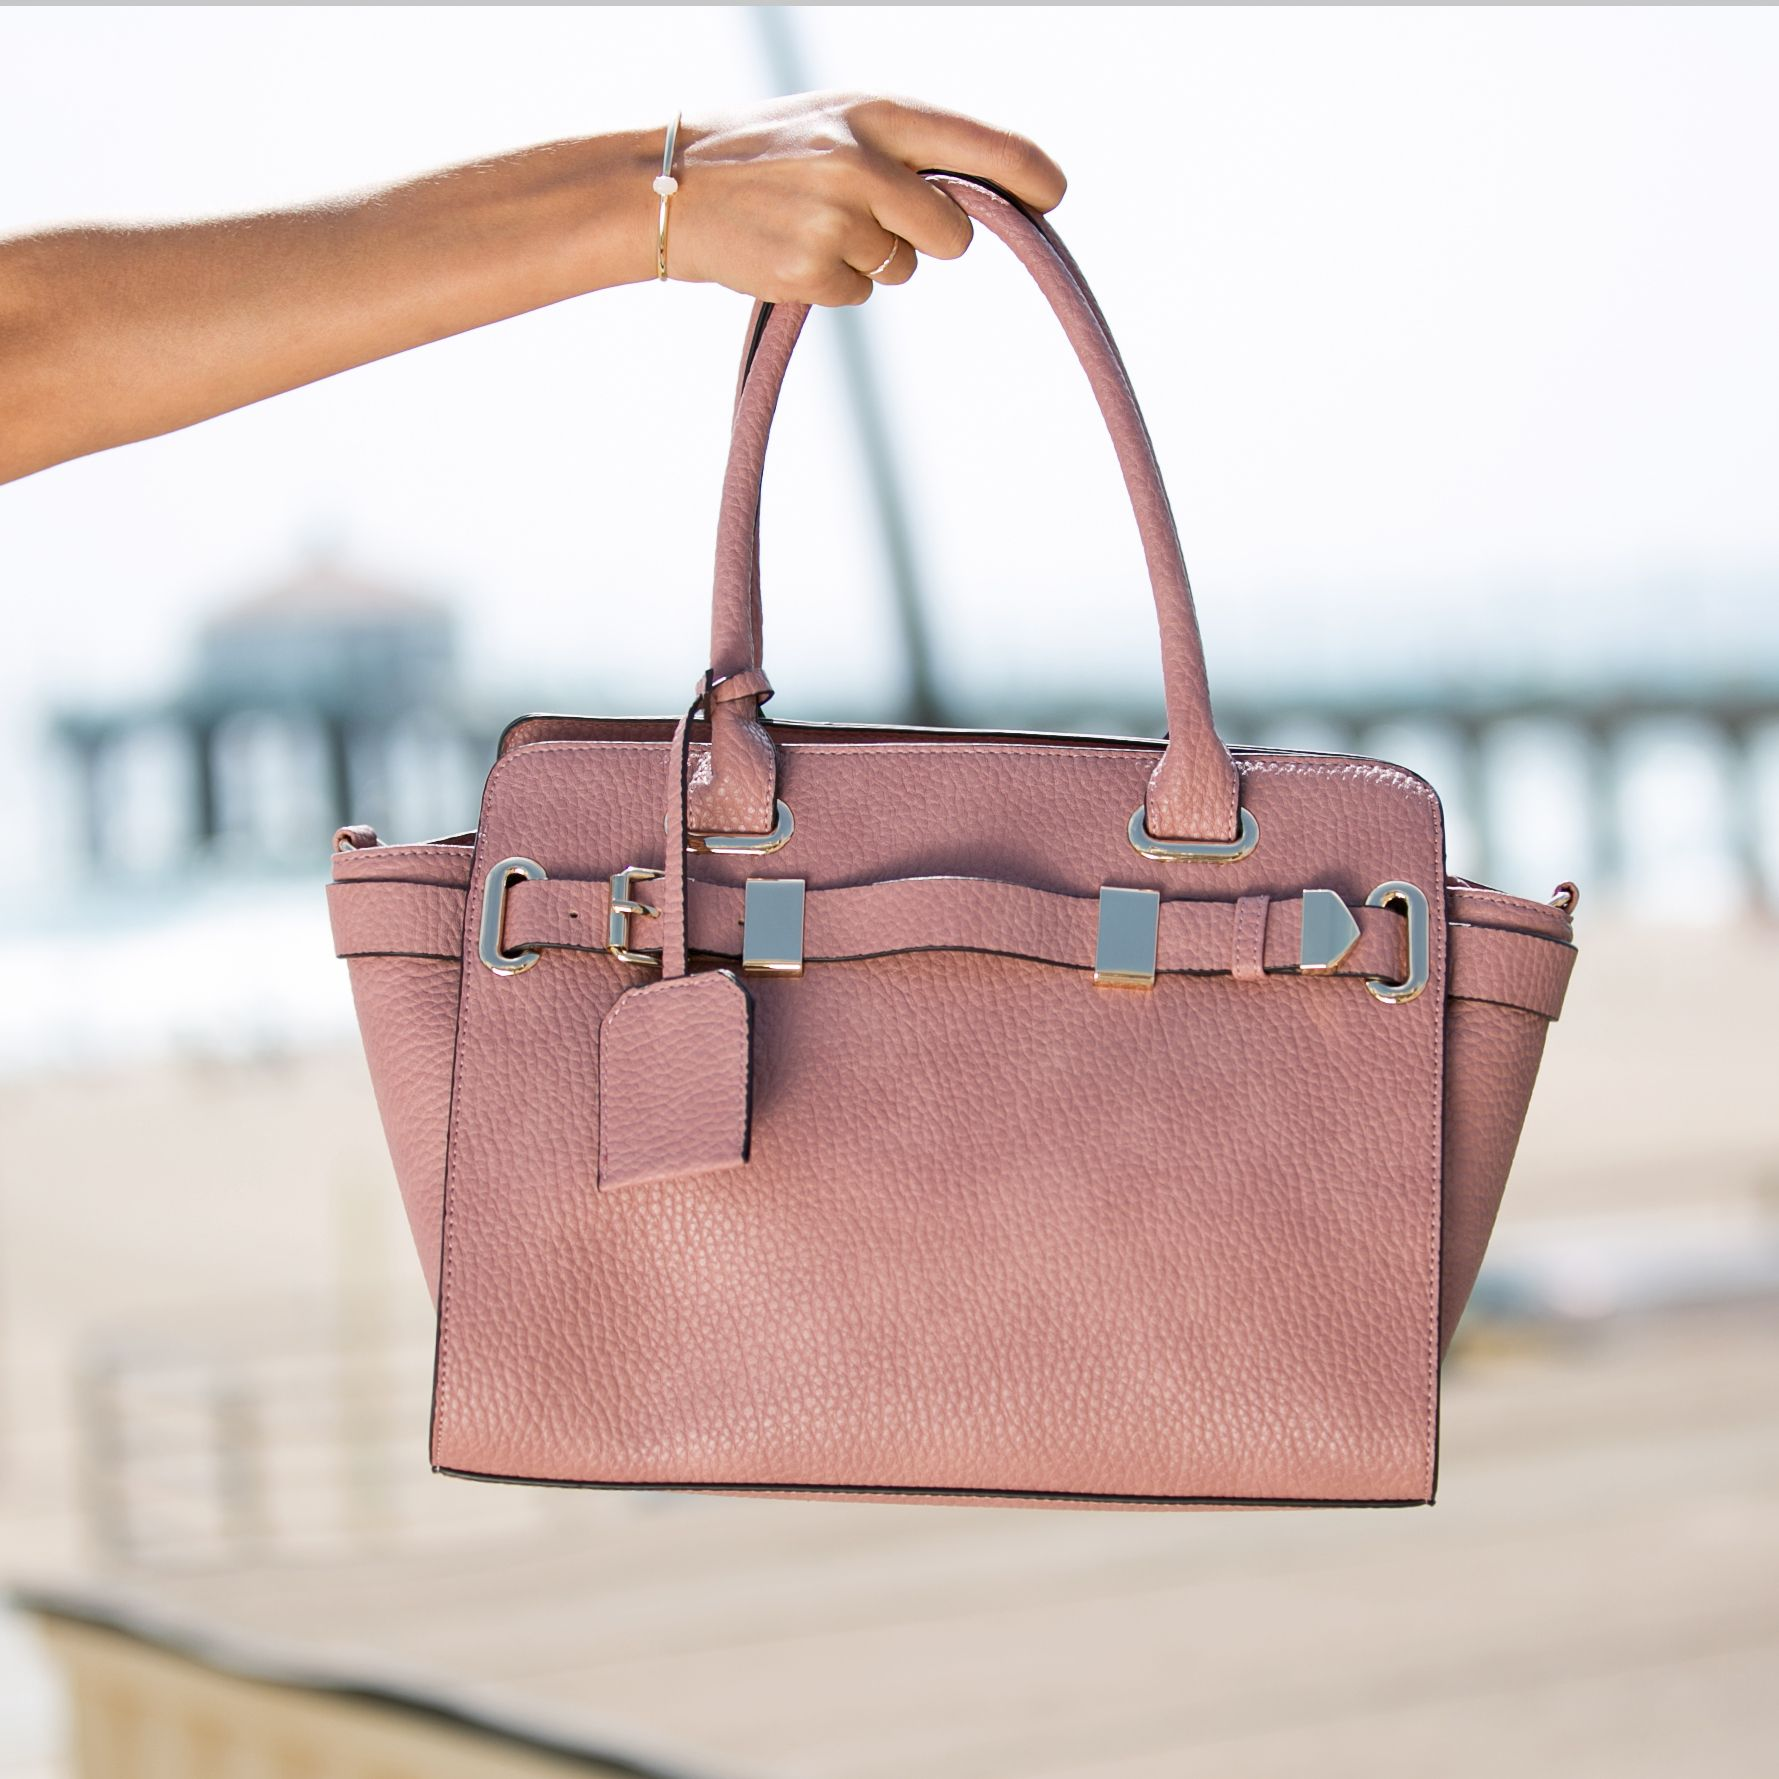 This Pretty Pink Handbag Is Perfect For A Summer Getaway Shoedazzle Purses